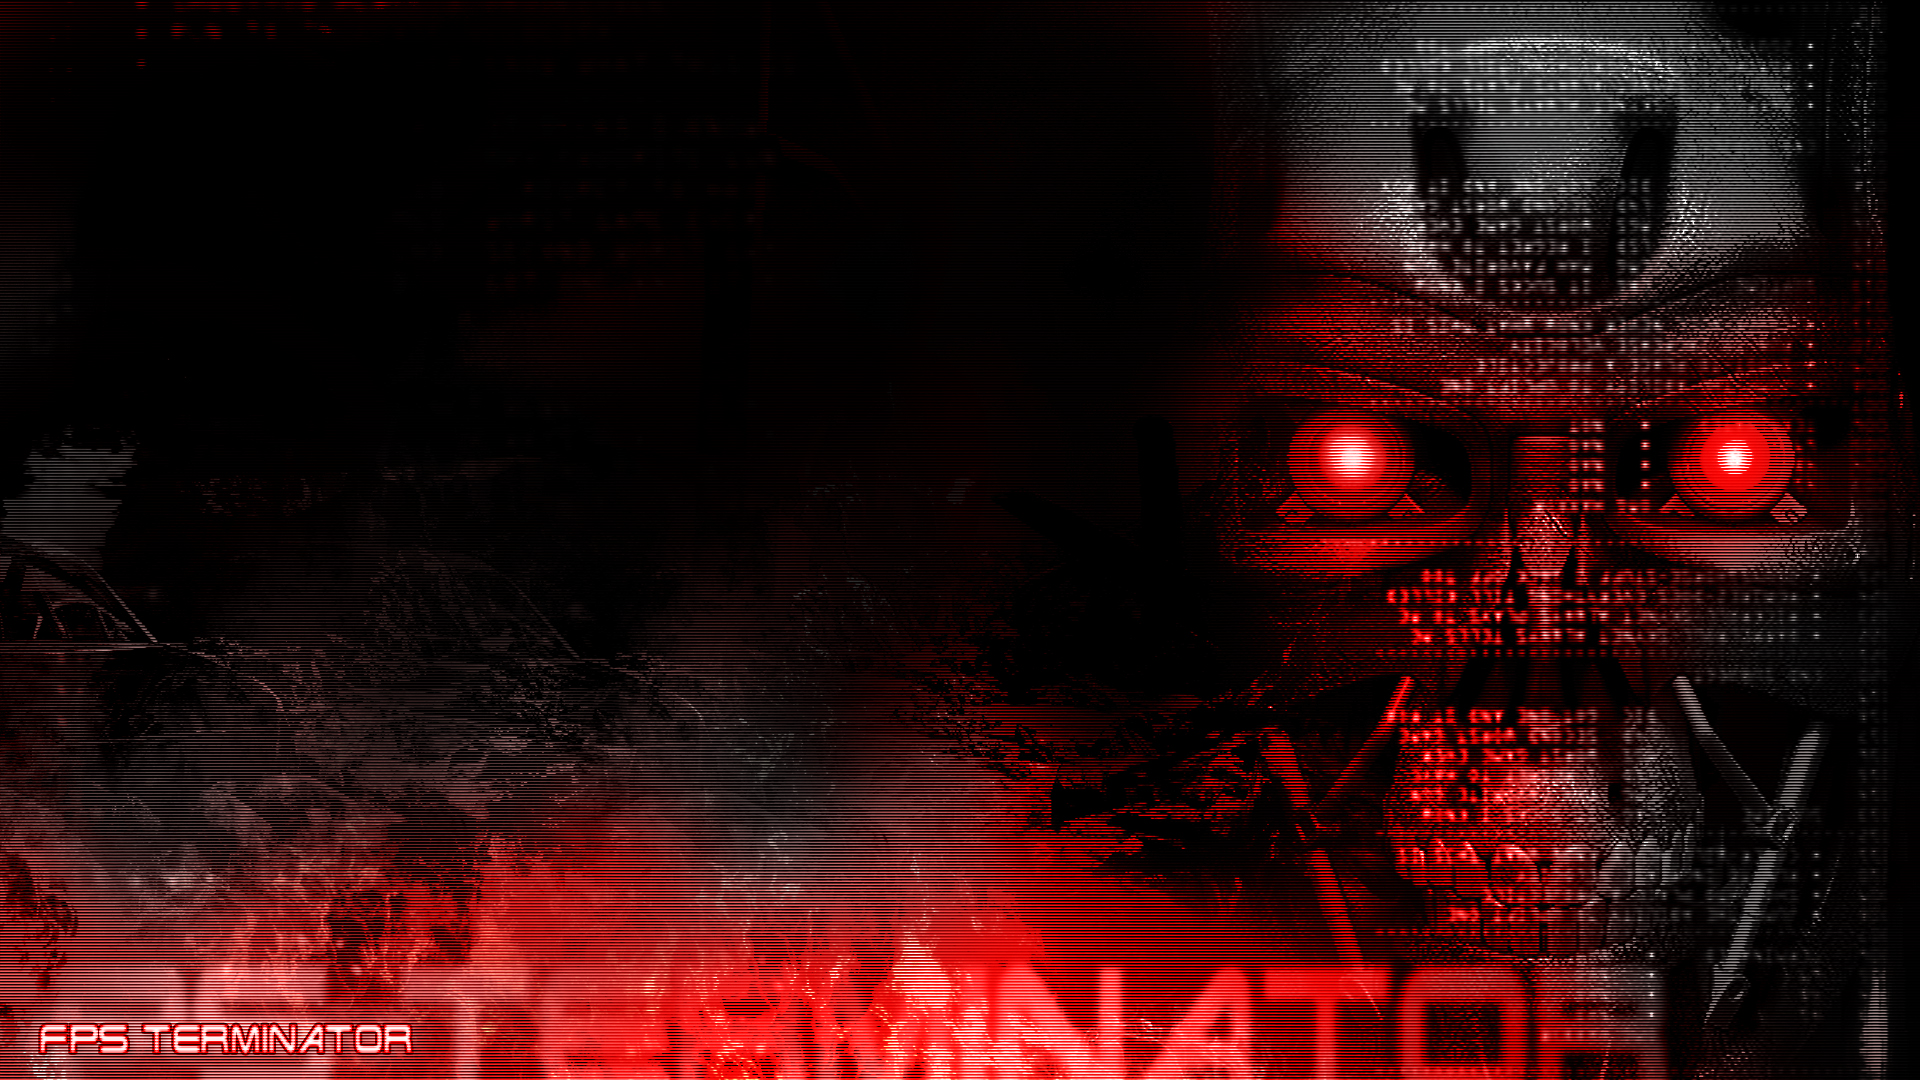 Black 3d Hd Wallpapers 1080p Widescreen Terminator Full Hd Wallpaper And Background Image